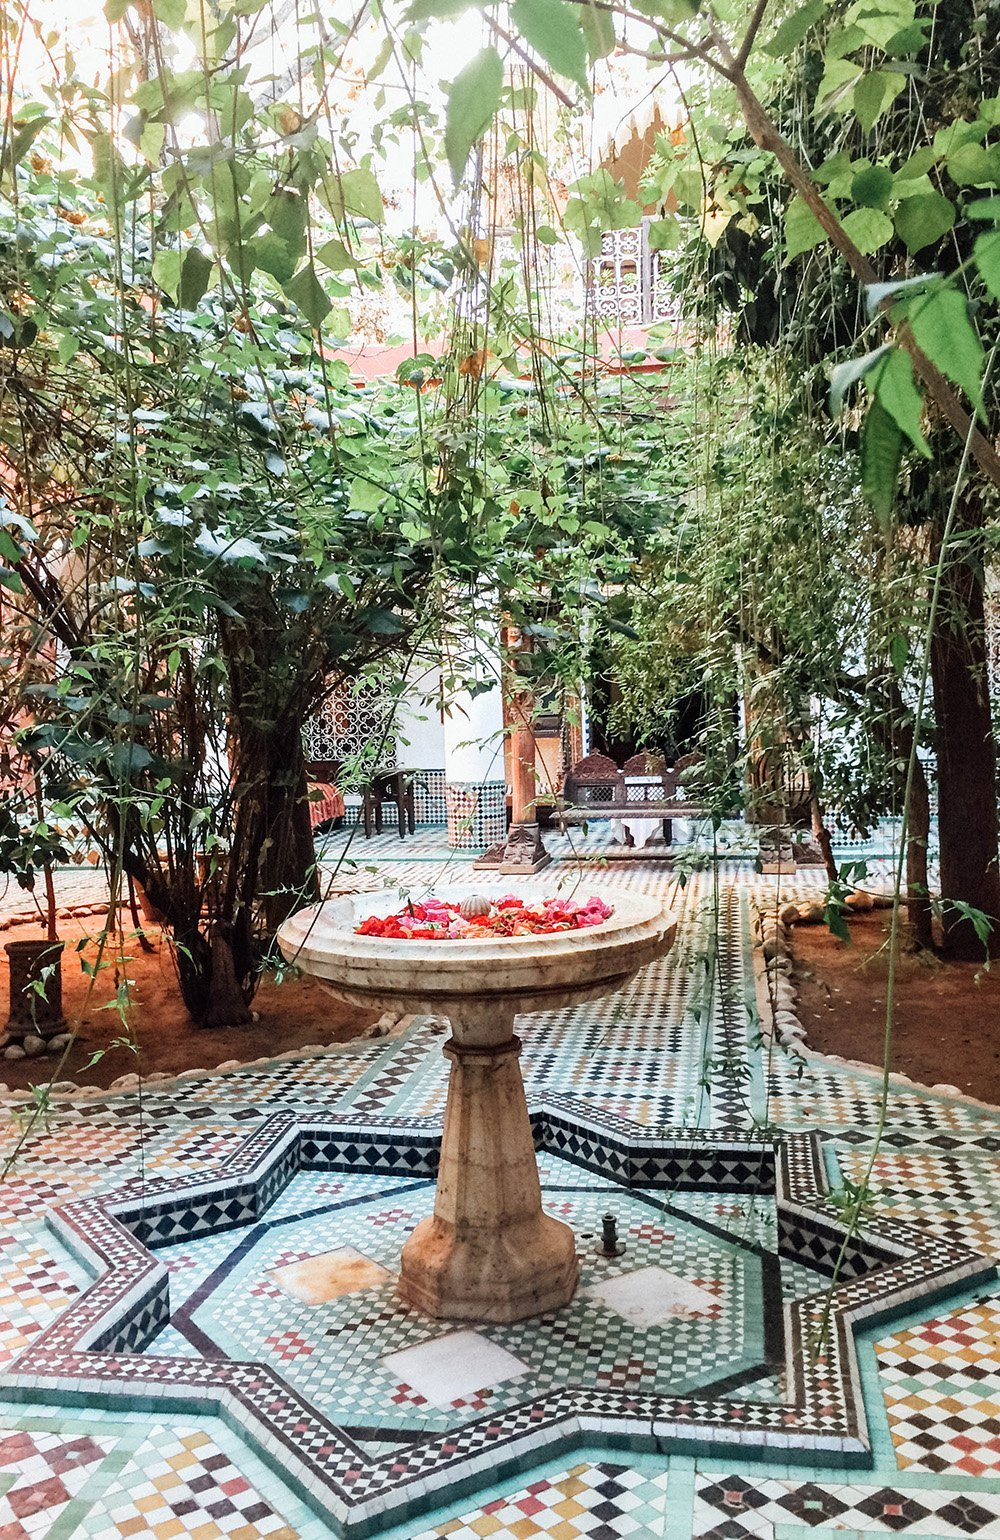 You want to eat all of Morocco but don't know where to start? Then I recommend you join Marrakech Food Tours for a gourmet treat in the medina - streetfood & tagine await! #morocco #marrakech #foodtour